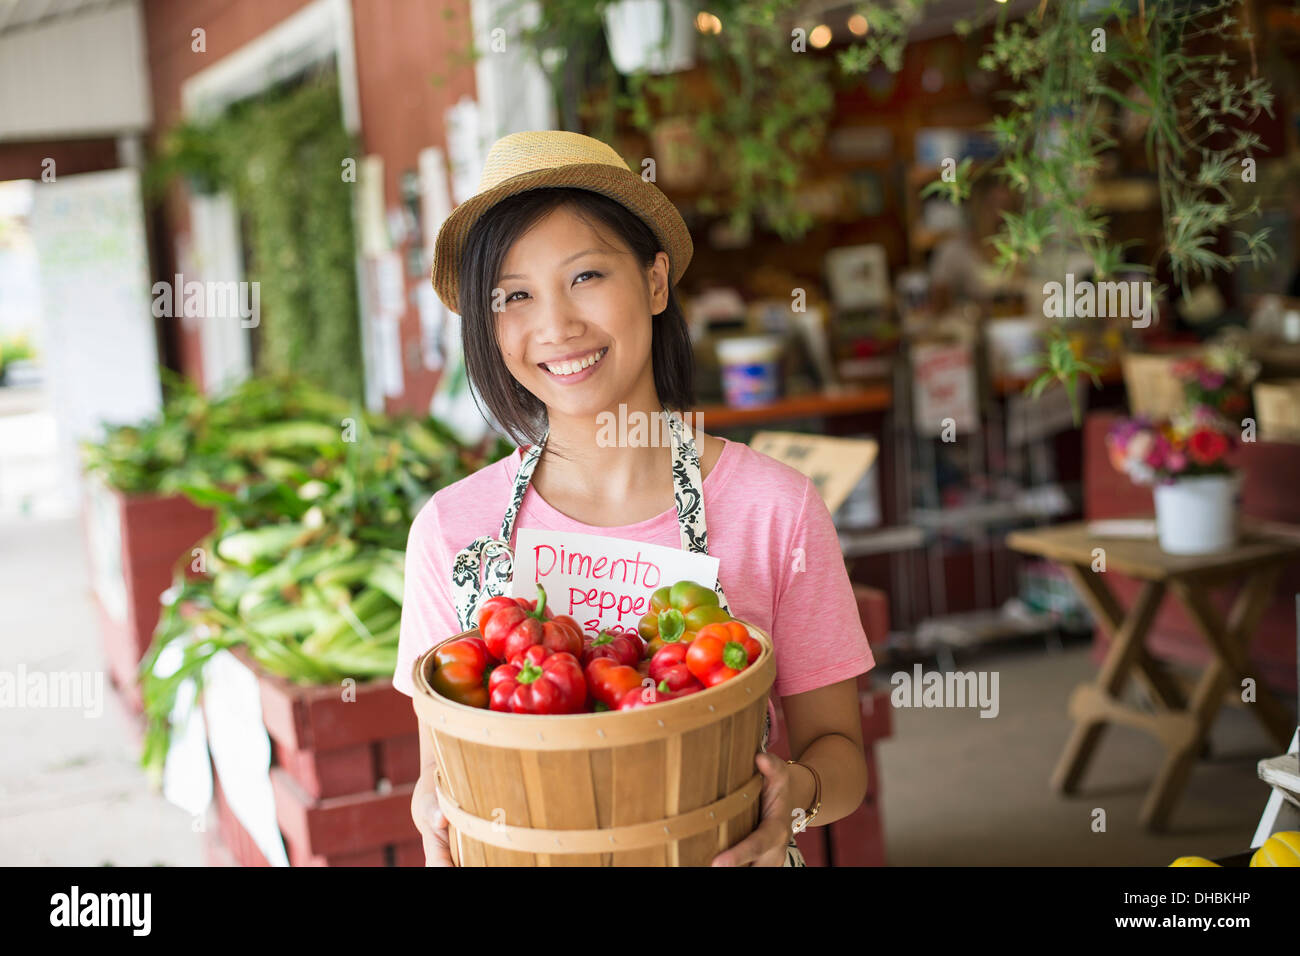 A woman working on an organic farm stand, displaying fresh vegetables for sale. - Stock Image